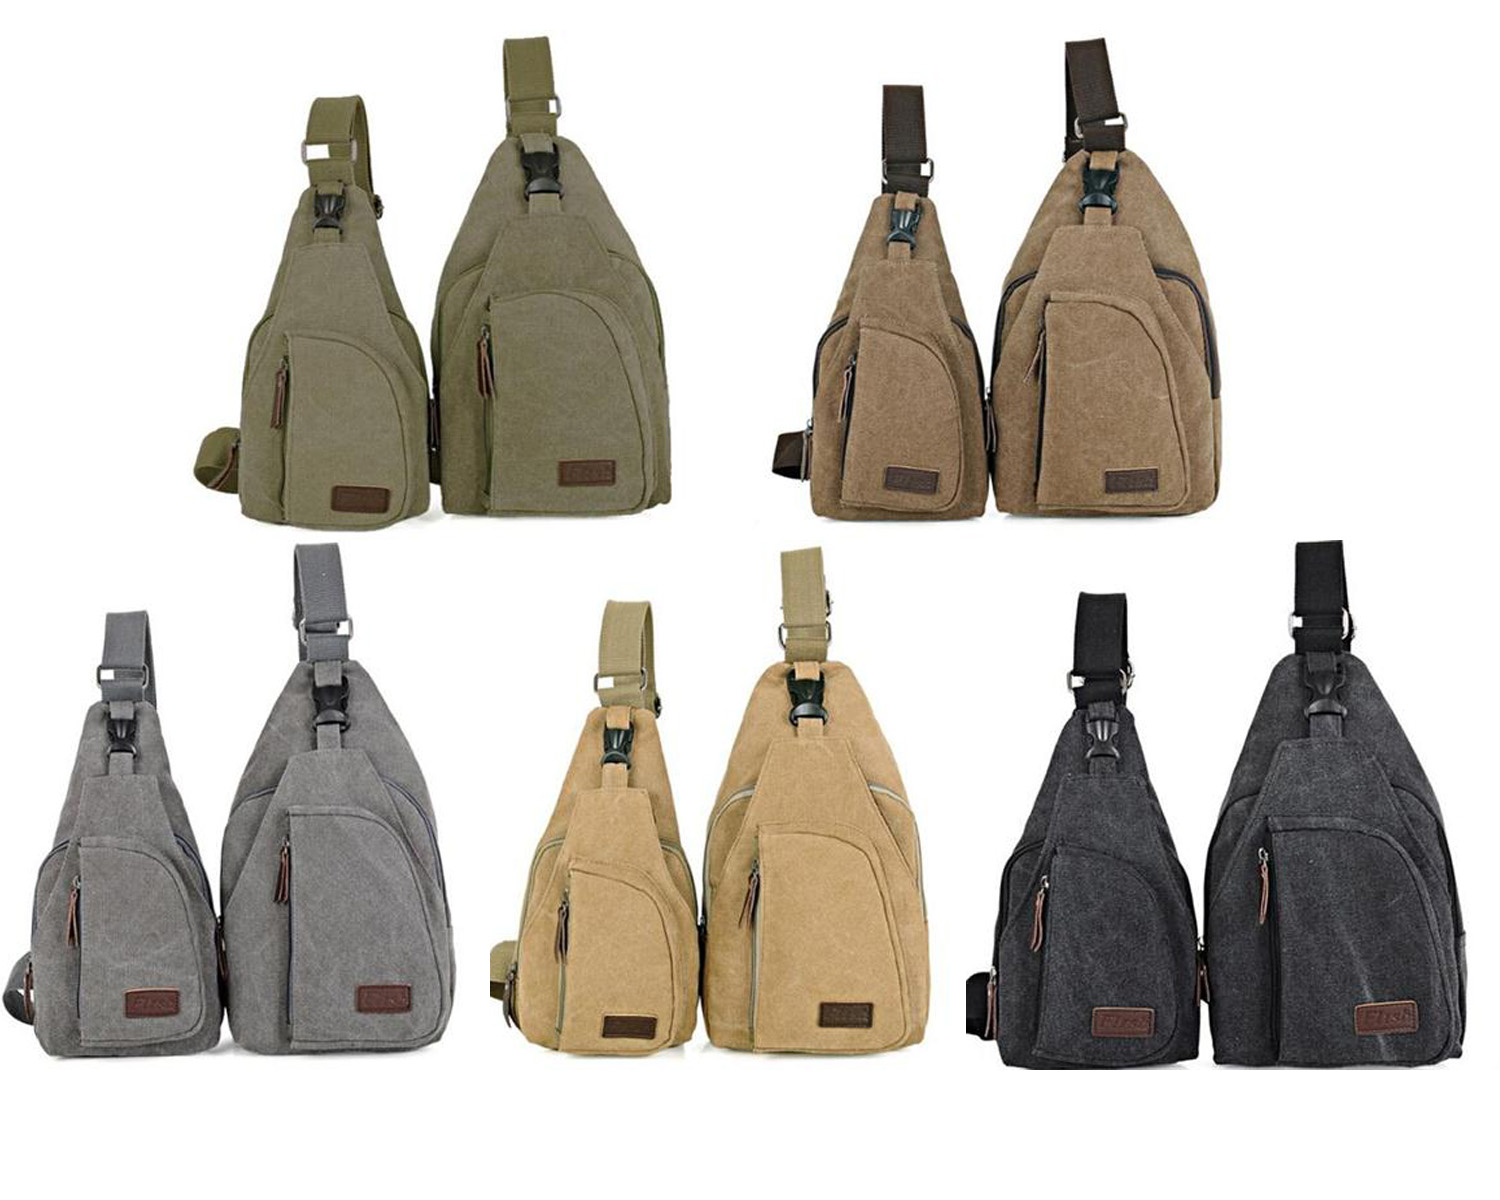 Hot sales Outdoor Sports Travel Camping Hiking Canvas Tactical Chest Bag Fashion Small Mens Messenger - Marry Chen's store